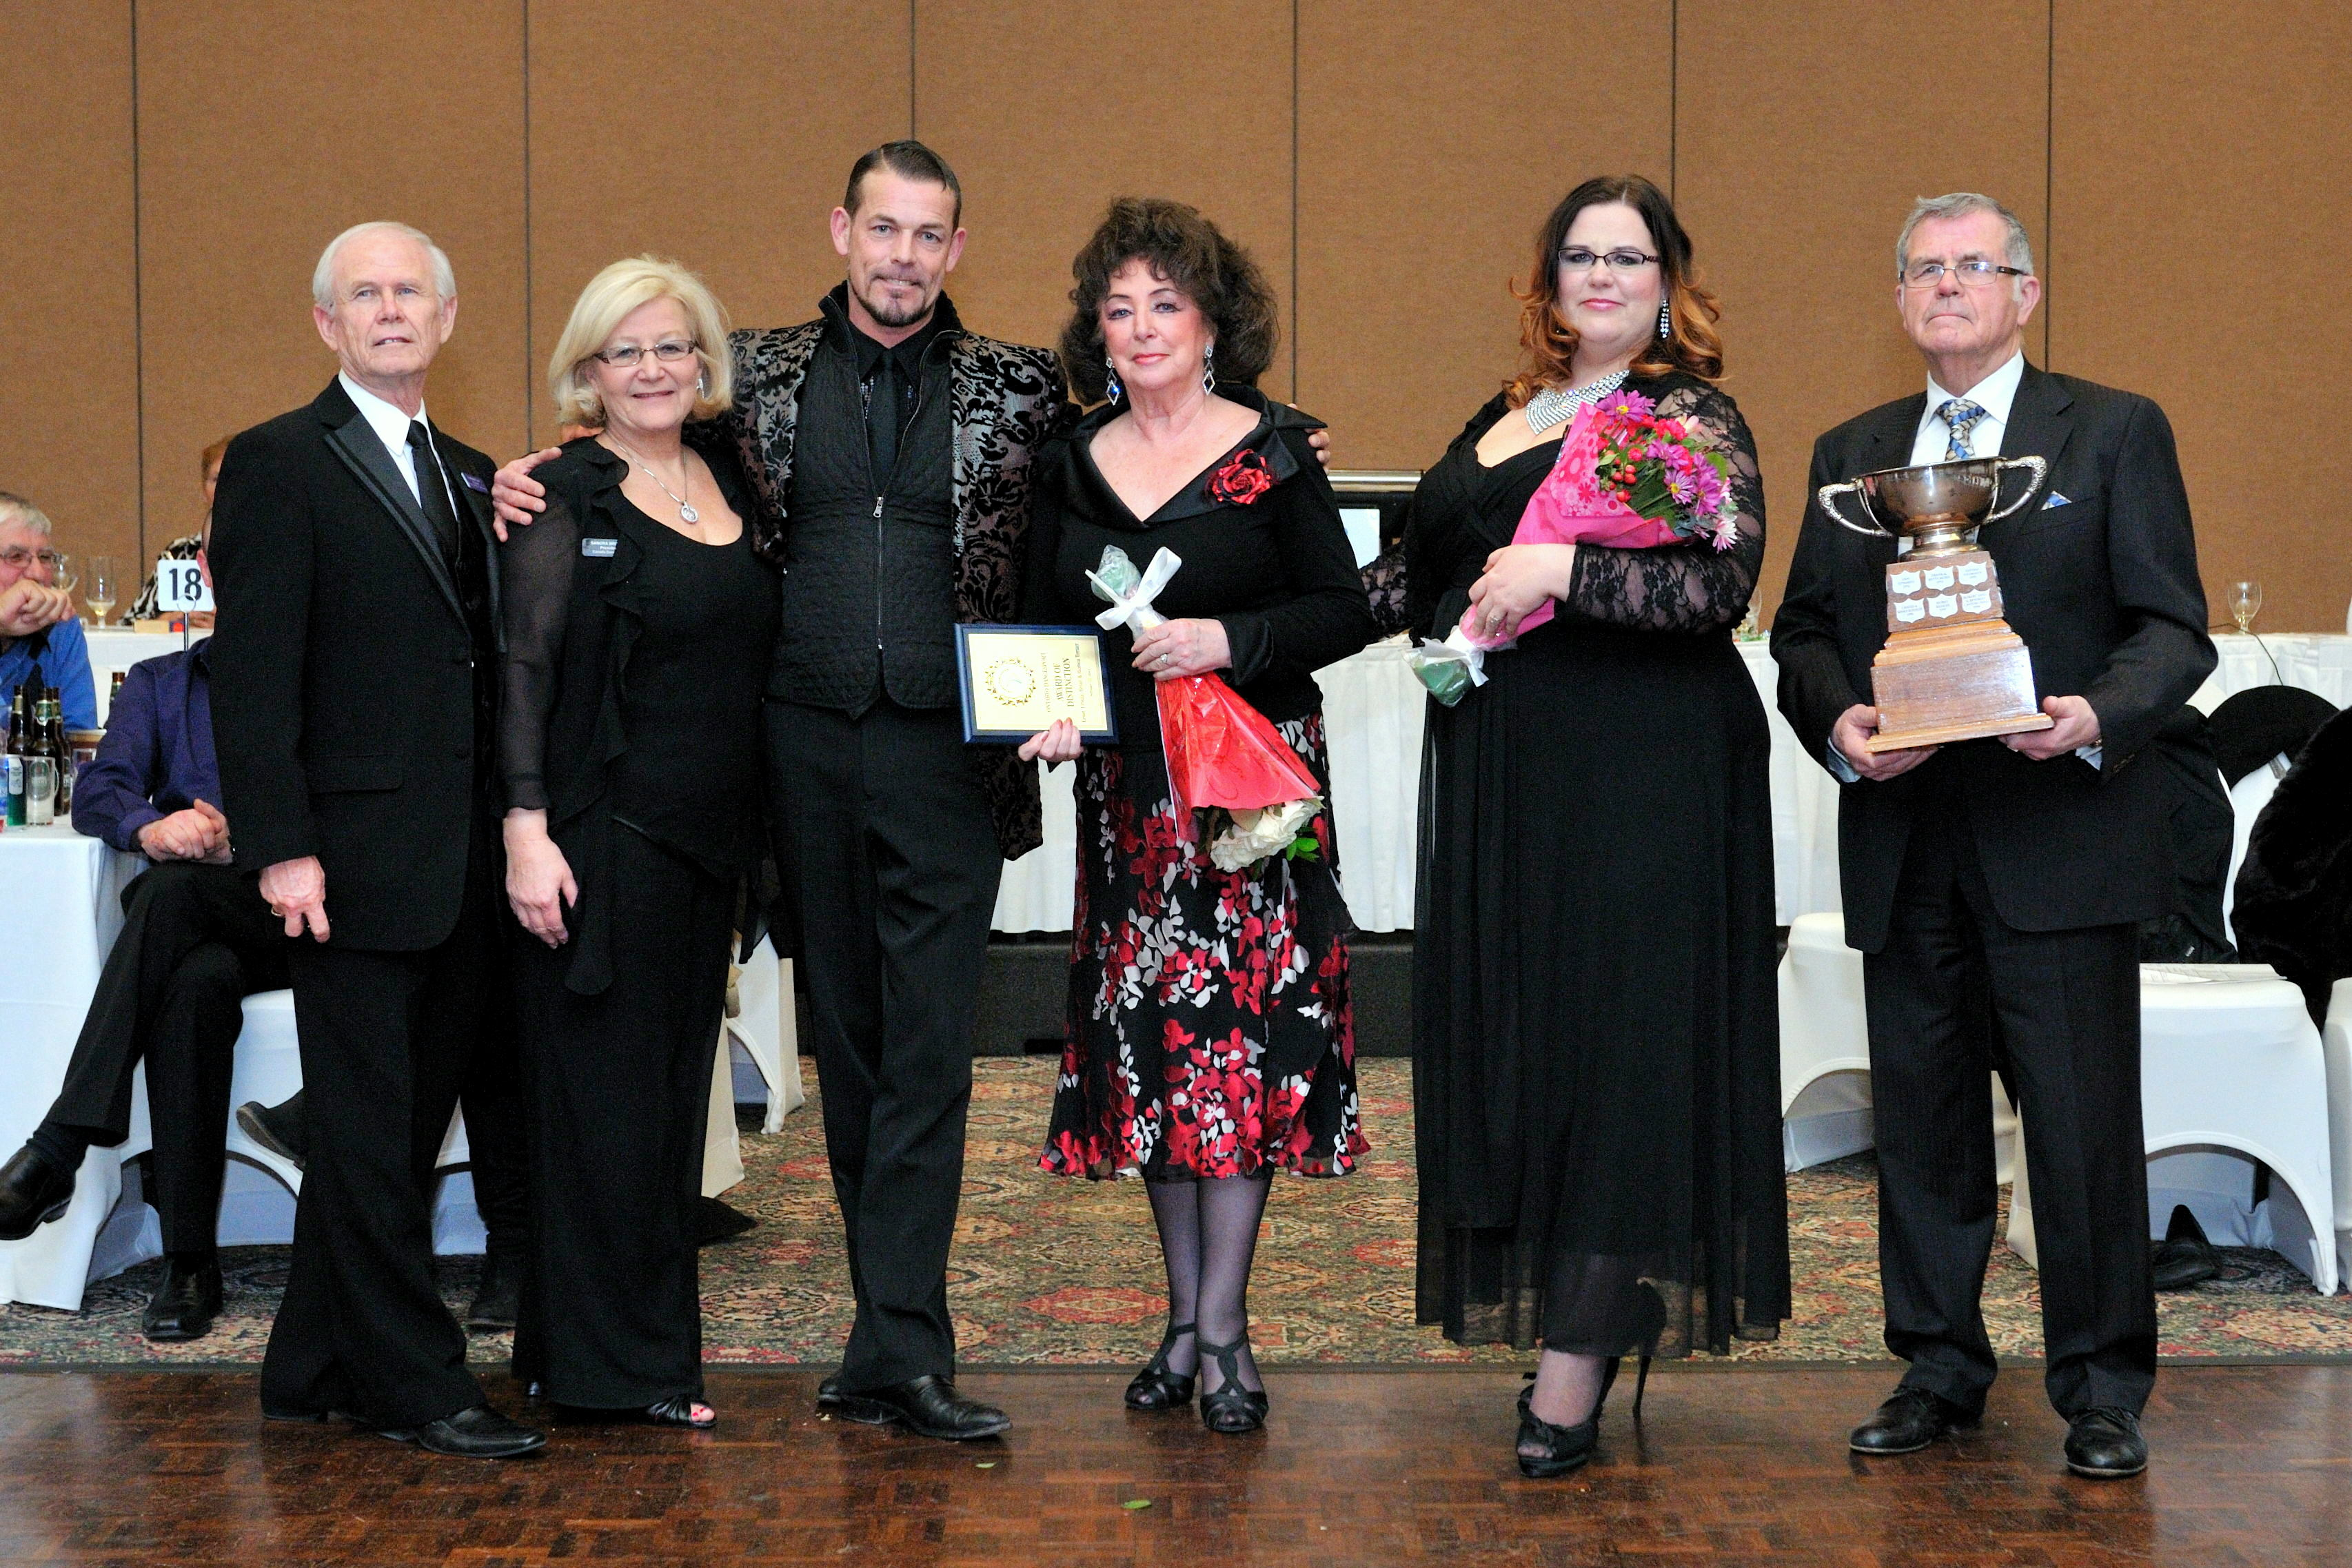 OADA AWARD OF DISTINCTION 2014 TORNERS Ernst, Ursula, Bianca and Brian with Gord and Sandy BRITTAIN OADA and CADA presidents1